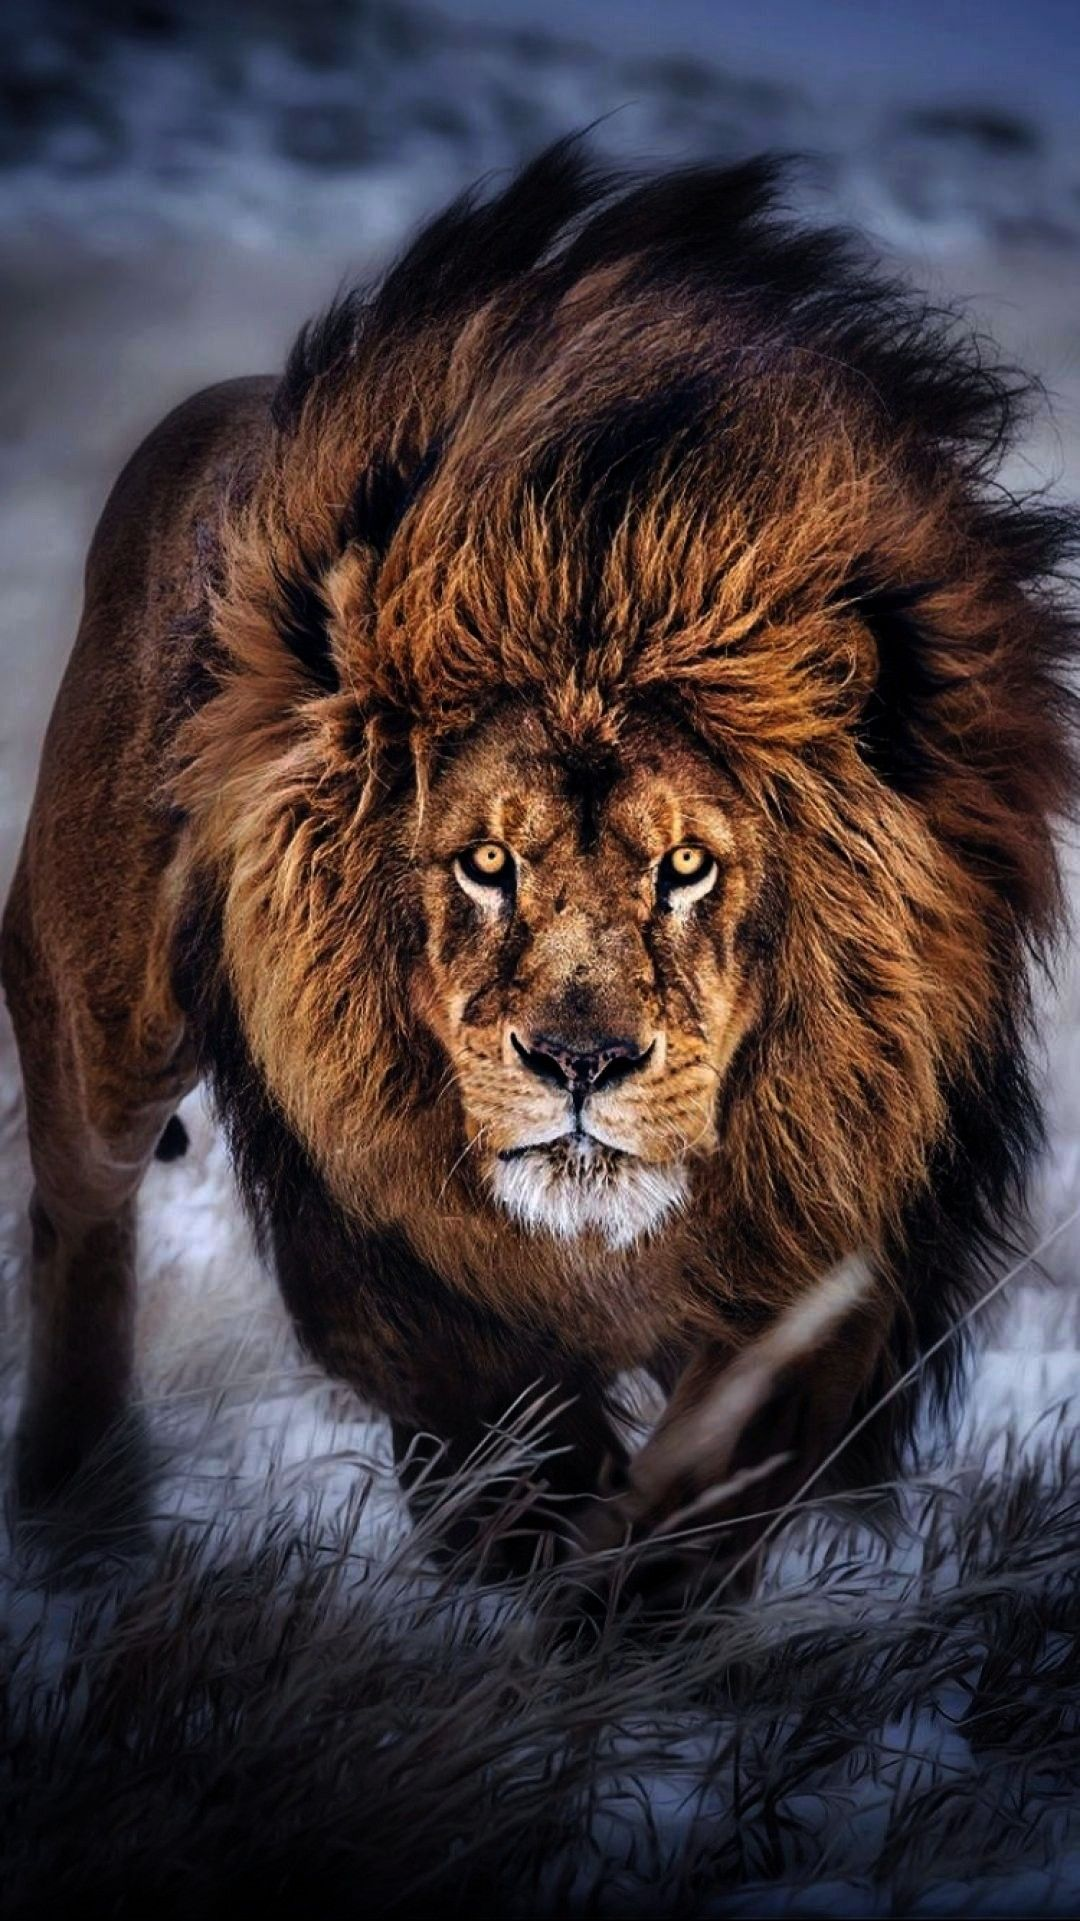 Backgrounds Wallpapers 1080x1921 Wallpaper Especial Desktop Android Ayoonei Unica Mobile Iphone Floco 1080p Pho In 2020 Lion Pictures Lion Wallpaper Lion